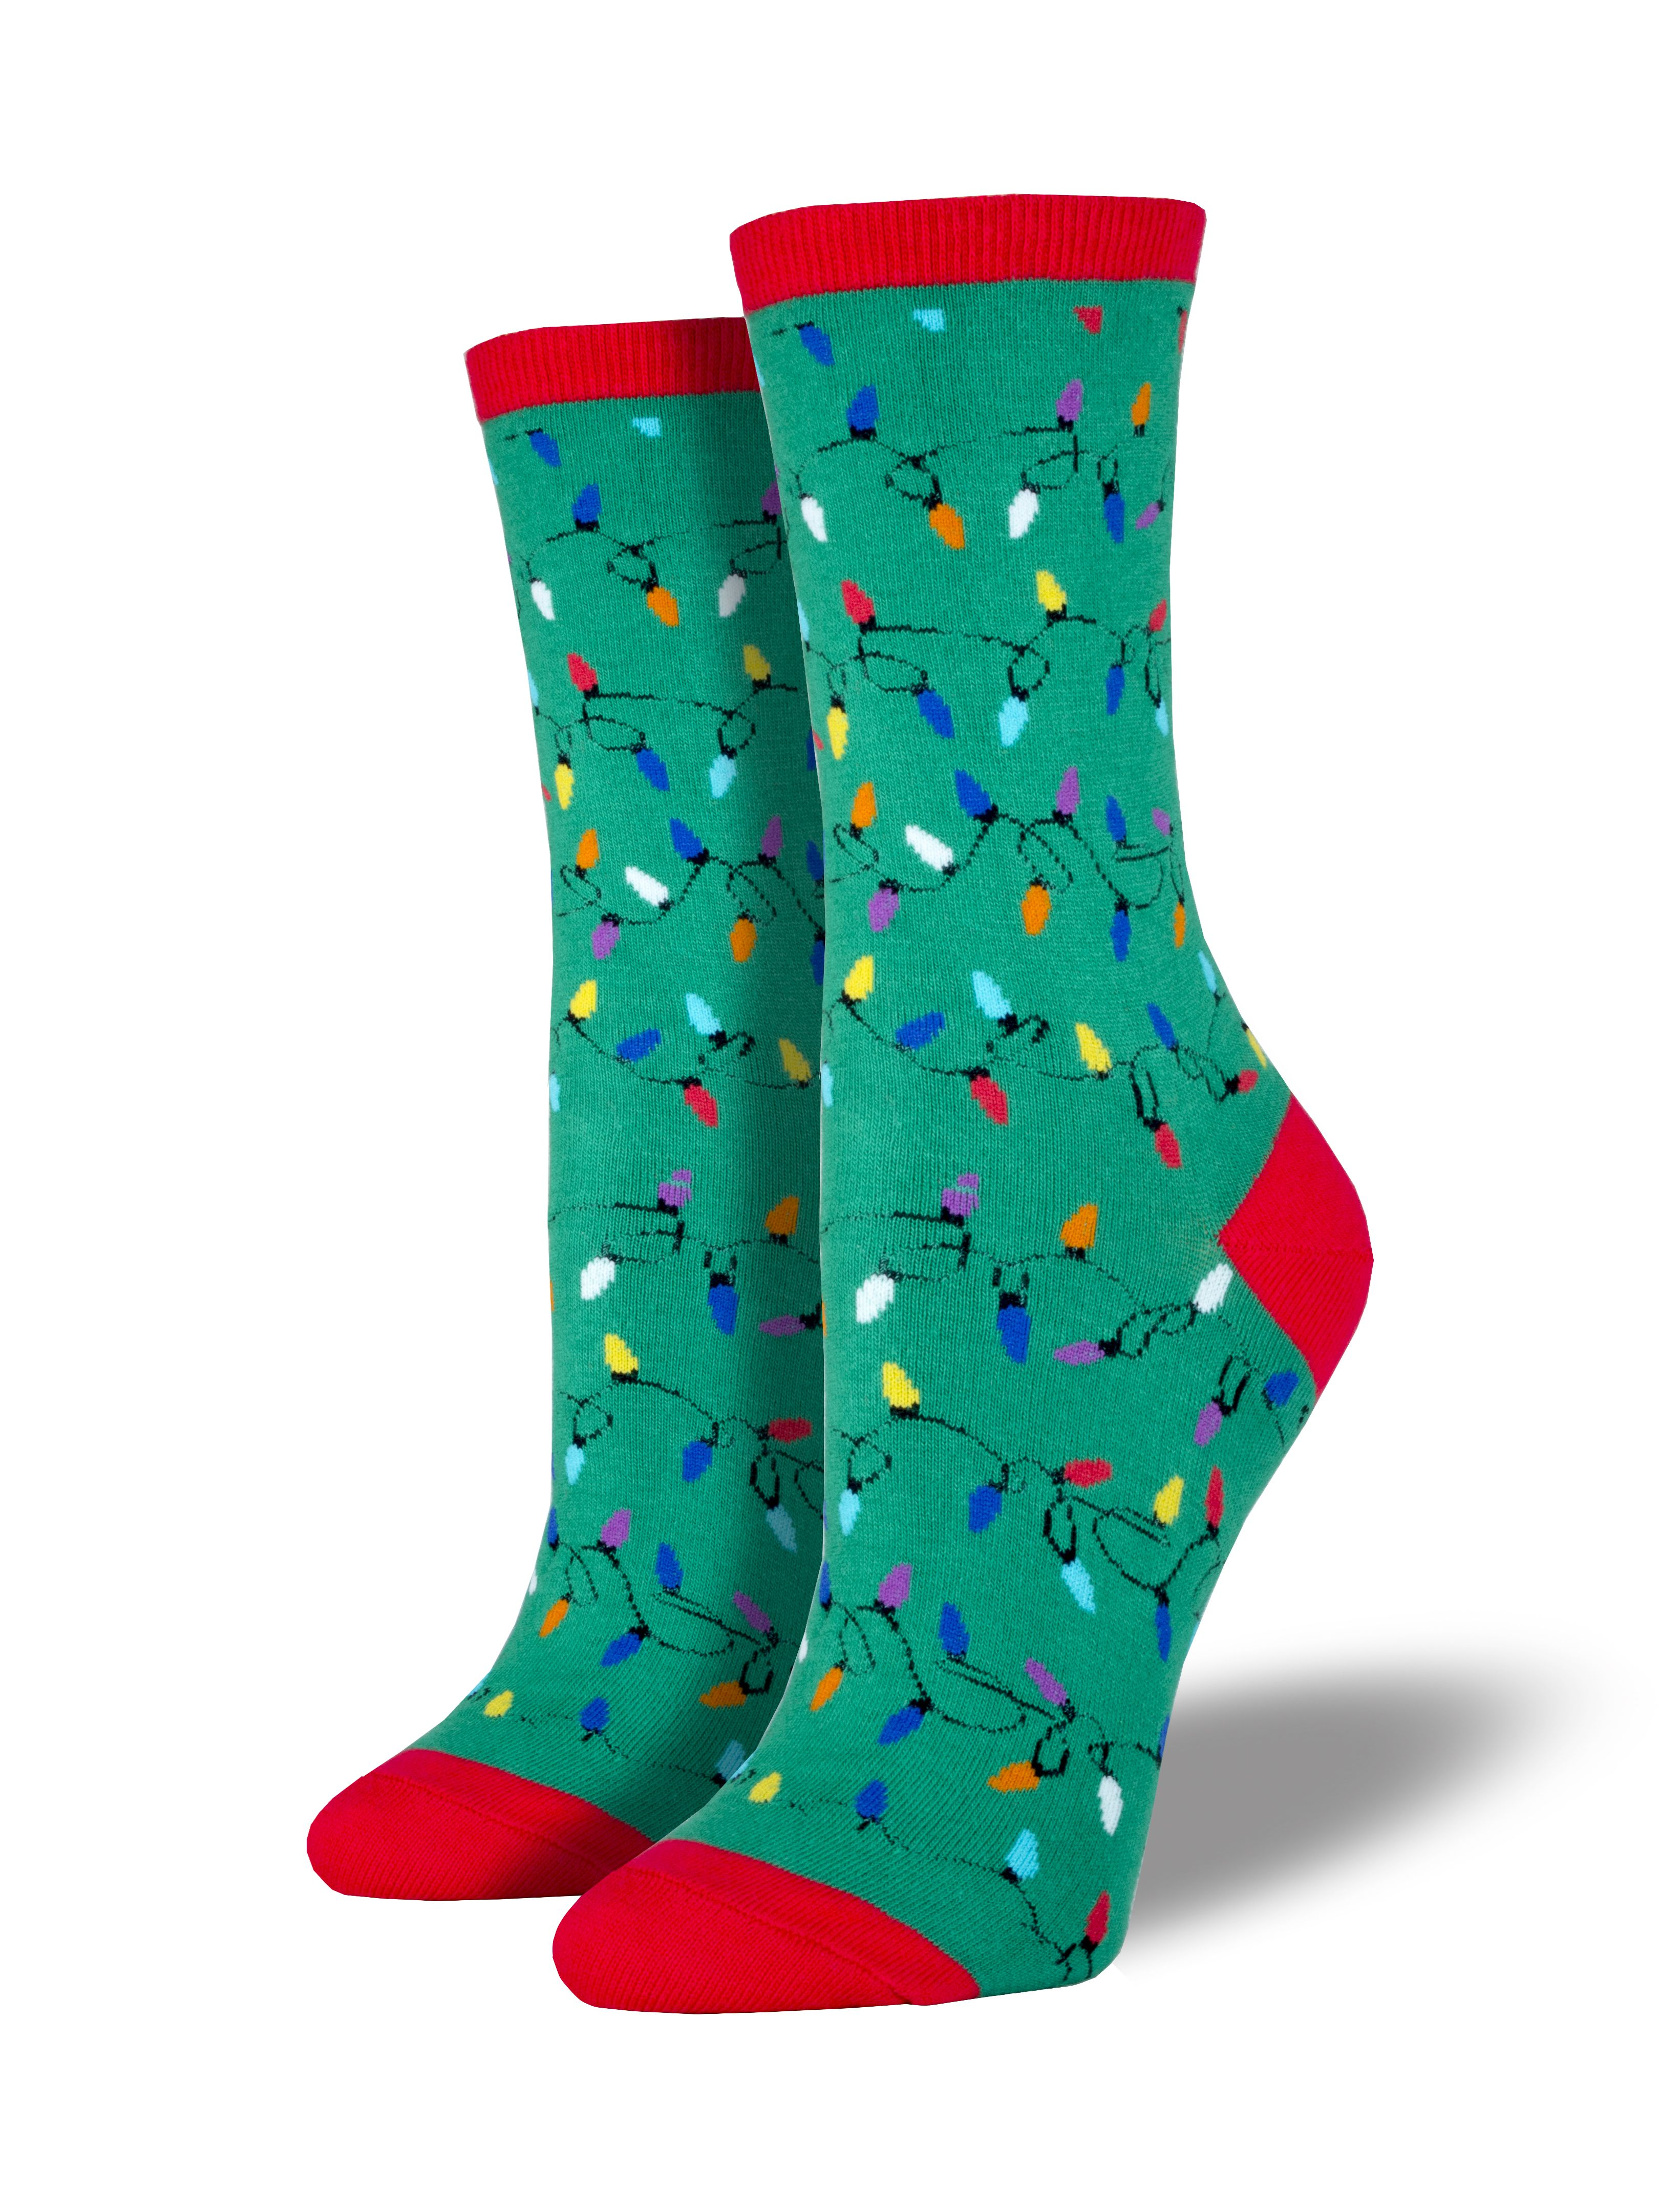 light up your feet with christmas lights socks perfect for the holidays your feet will be shining bright all day long